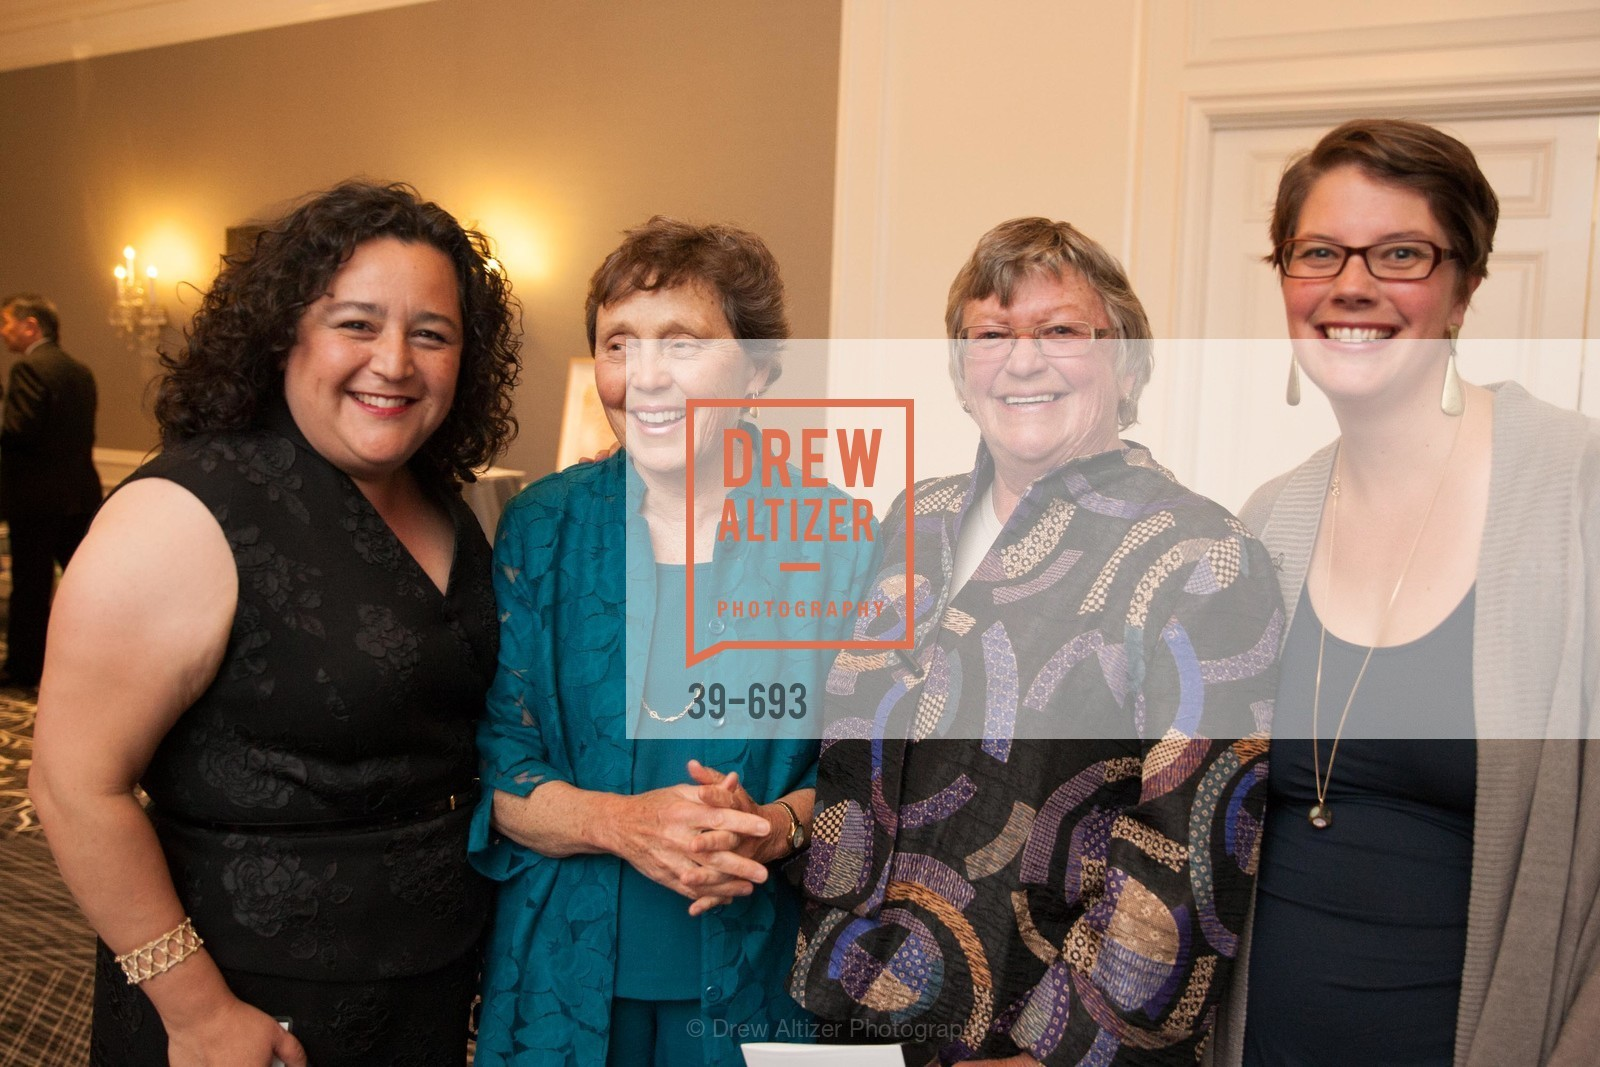 Renee Espinoza, Donna Hitchens, SFCASA'S Fostering Change Gala:  Room Without A Roof, US, May 1st, 2015,Drew Altizer, Drew Altizer Photography, full-service agency, private events, San Francisco photographer, photographer california